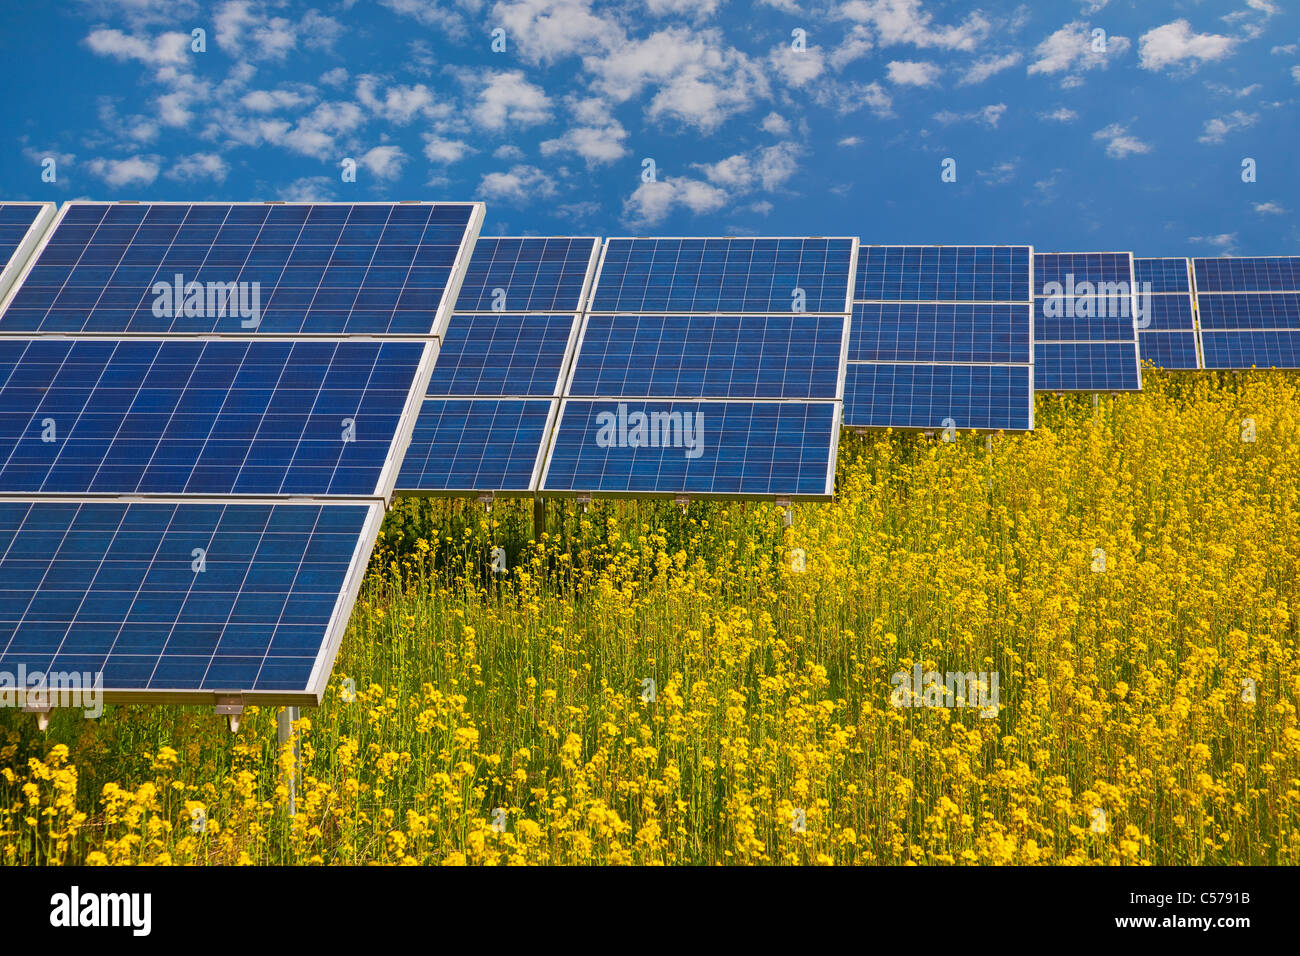 Solar panels in rapeseed field - Stock Image